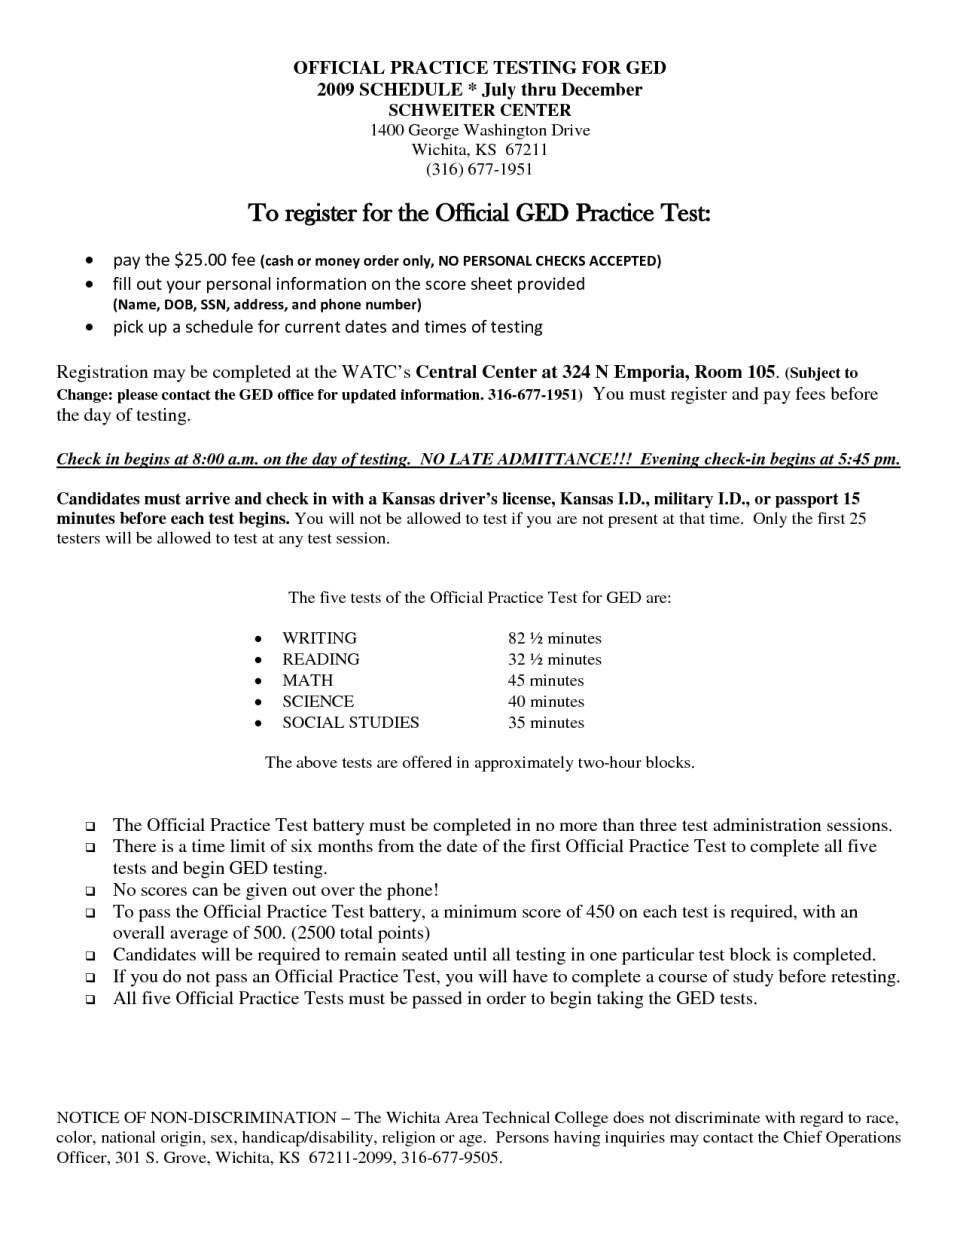 Free Printable Practice Ged Test Questions   Download Them Or Print - Free Printable Ged Worksheets